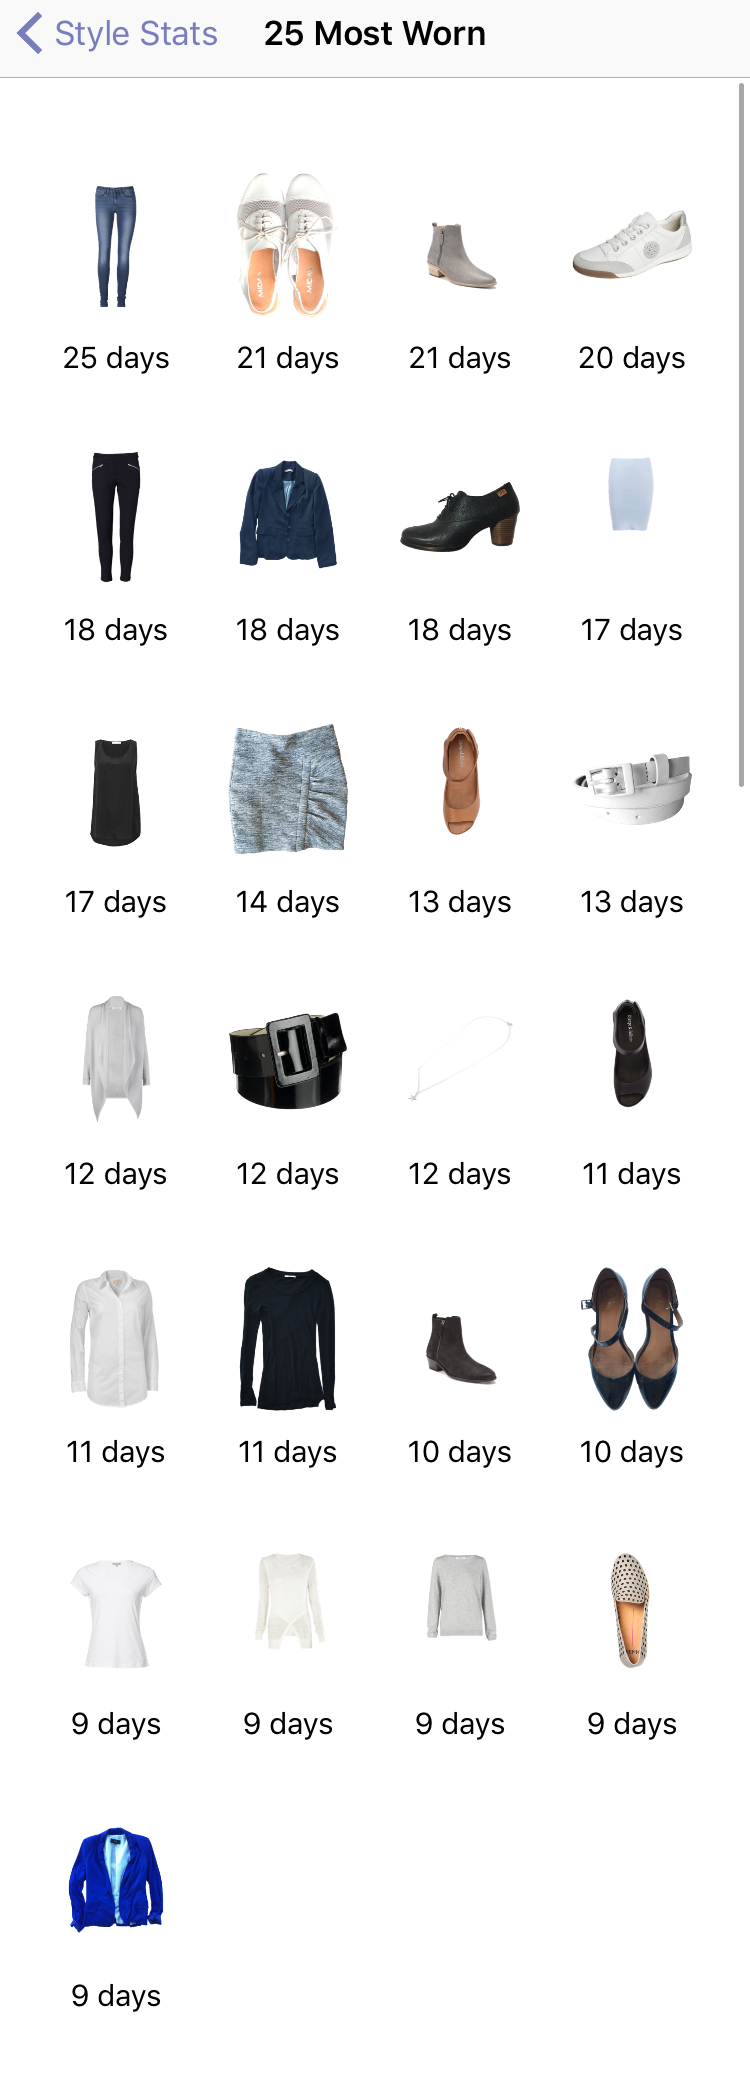 Most worn items